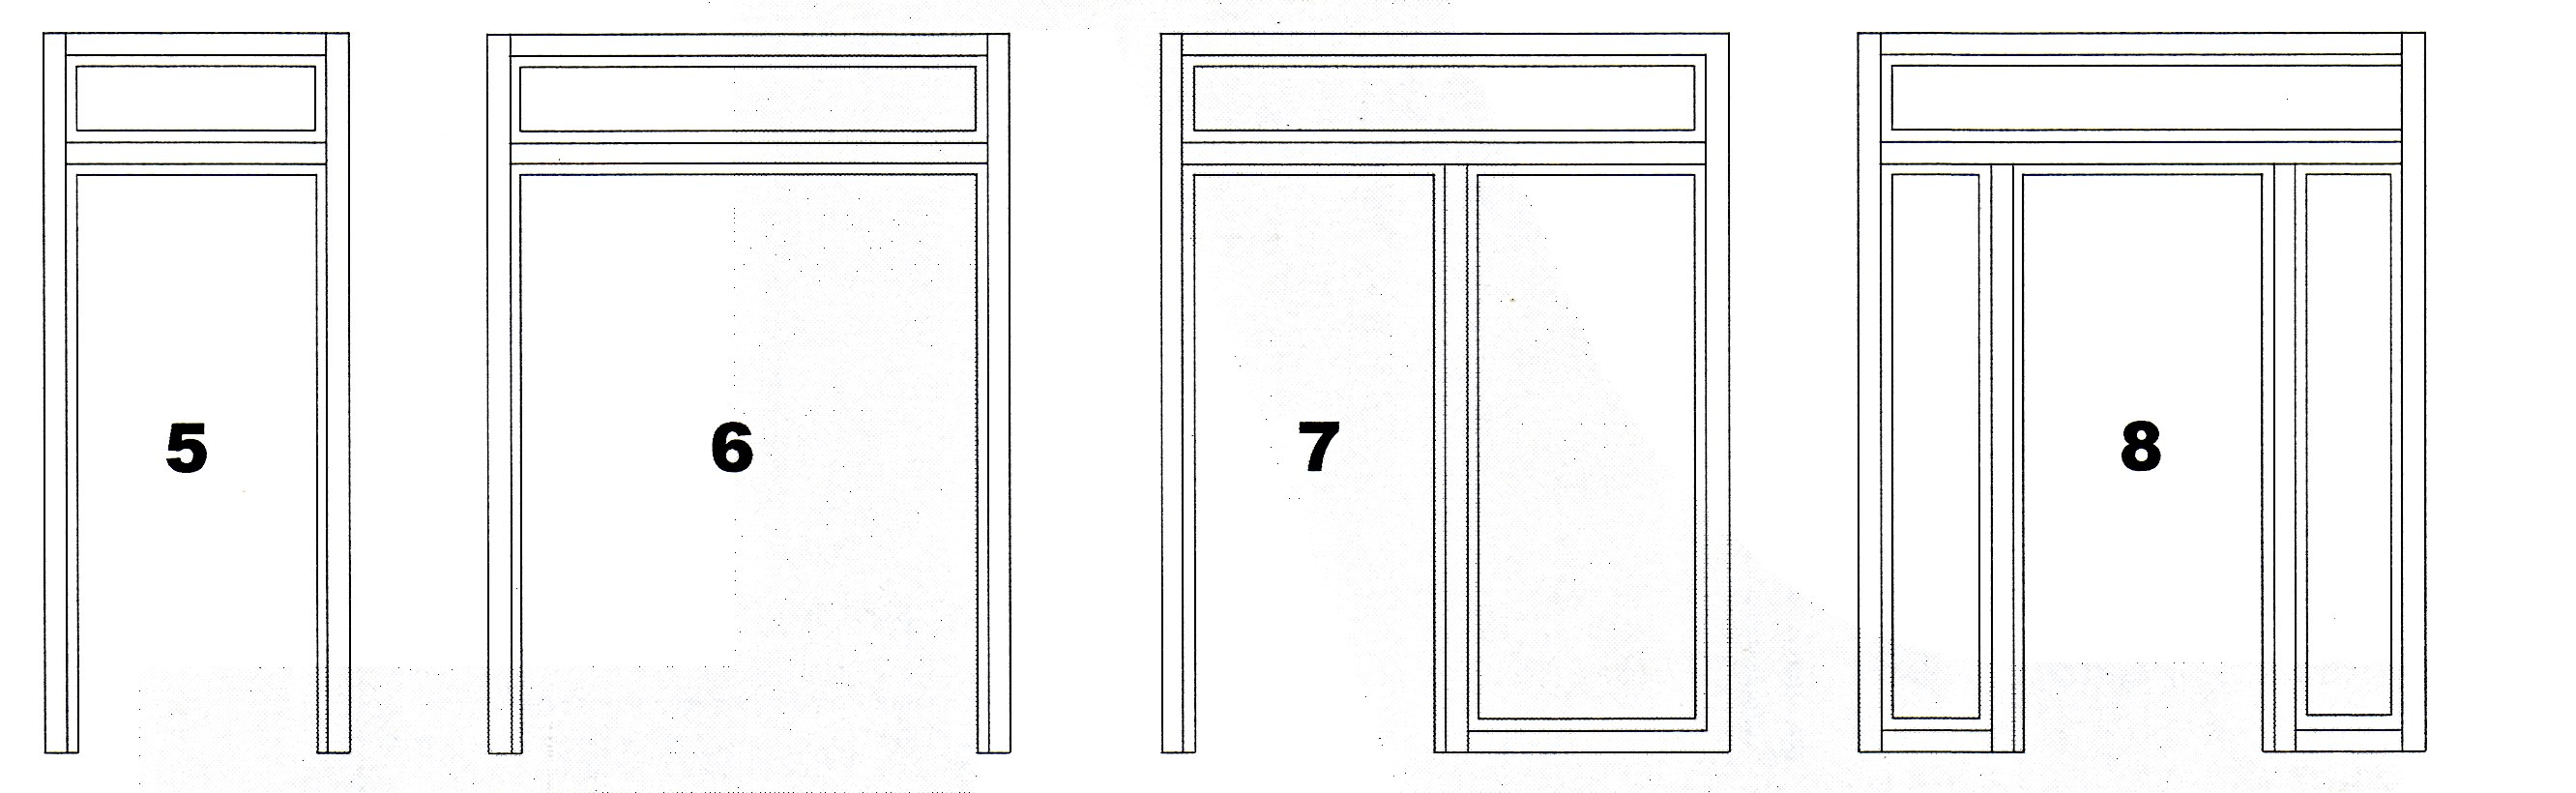 820 #676764 STEELCRAFT COMMERCIAL HOLLOW METAL DOORS AND FRAMES save image Steelcraft Doors 13572664